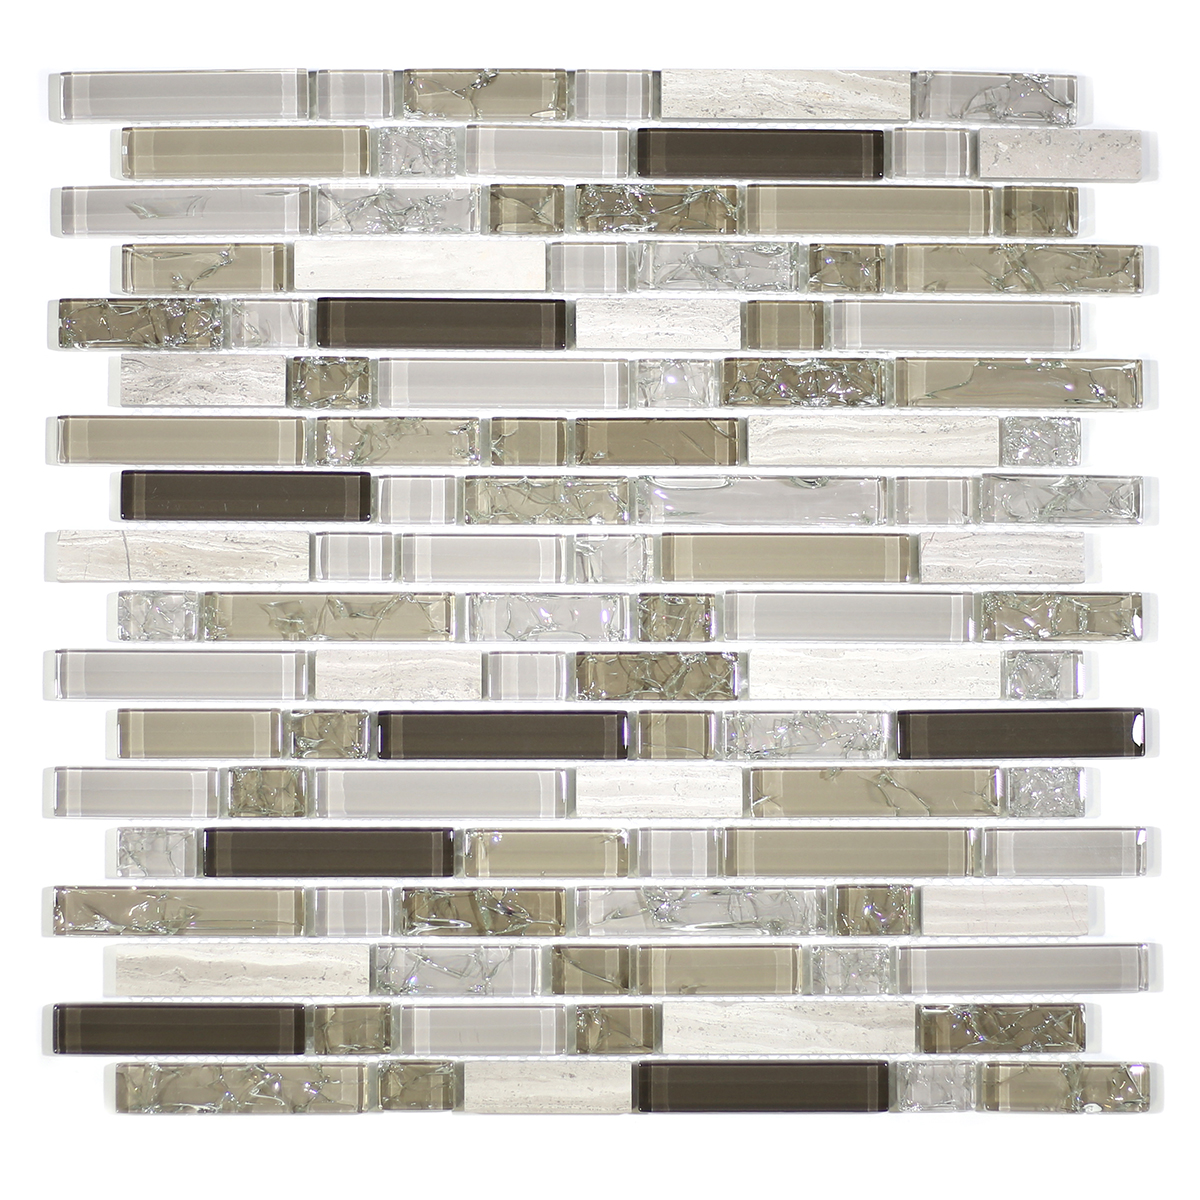 MA60-RB  RANDOM BRICK GLASS AND STONE CRACKLE MOSAIC